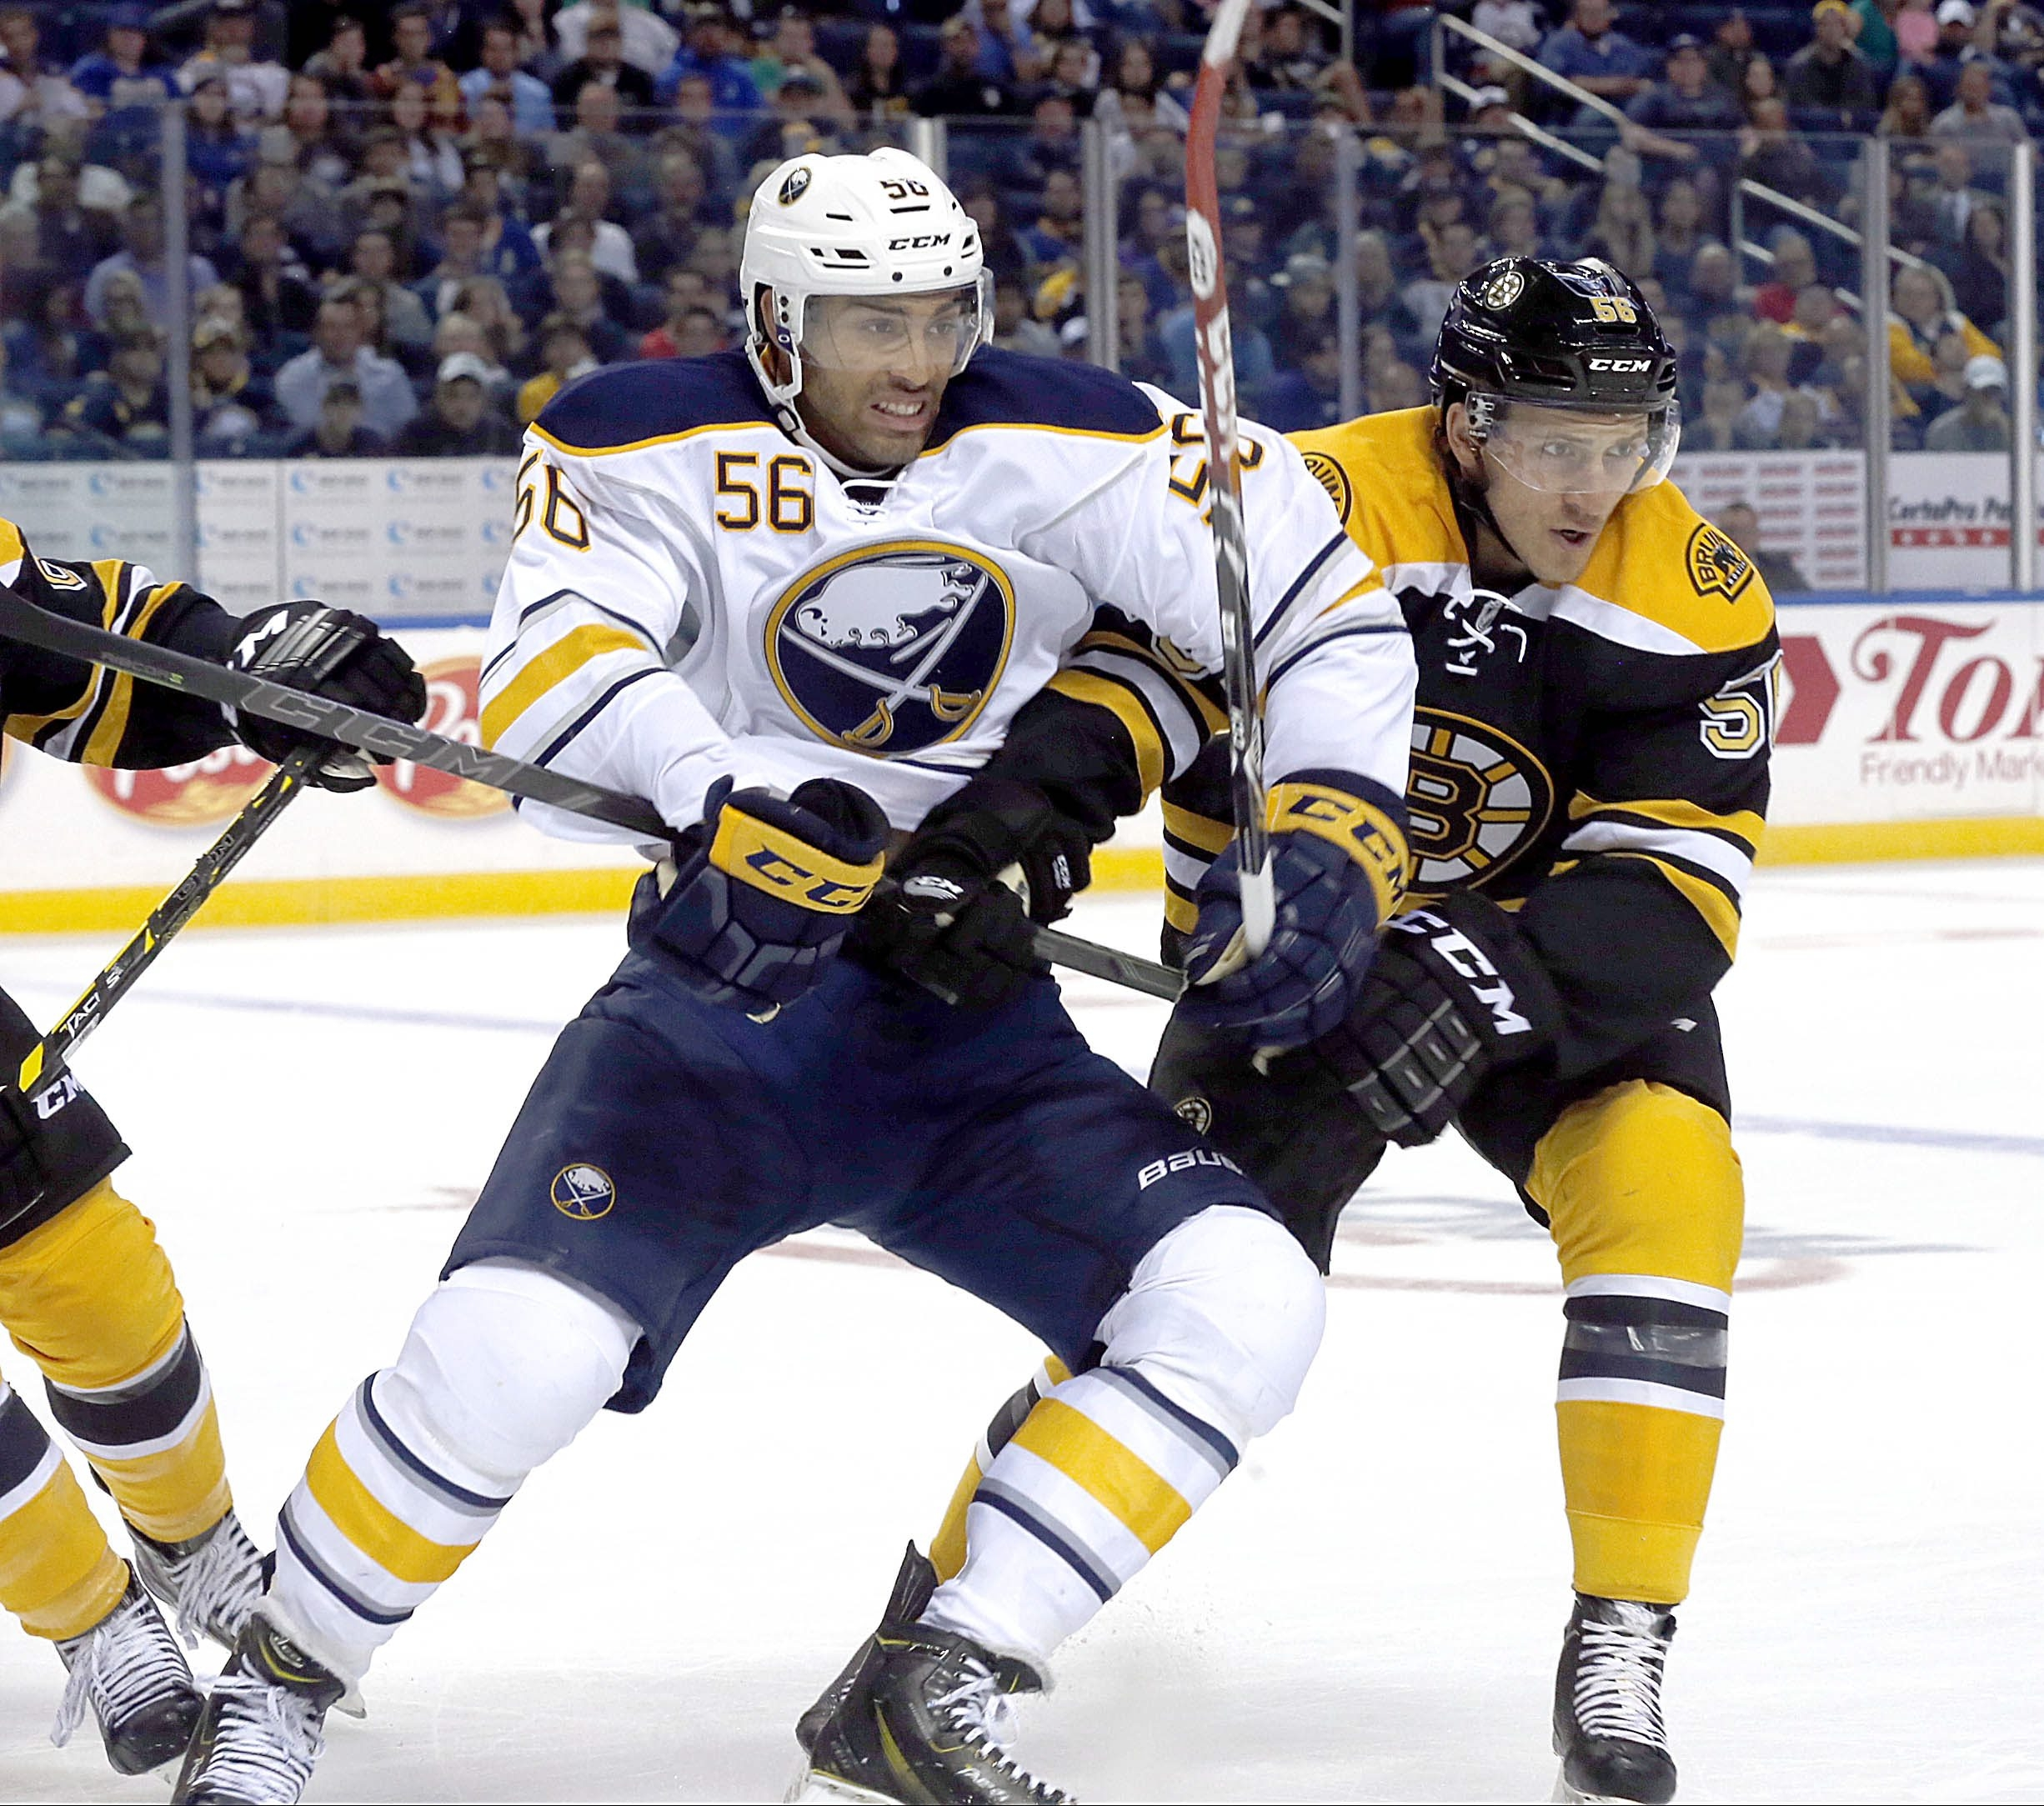 Justin Bailey has earned his first NHL callup to the Sabres.